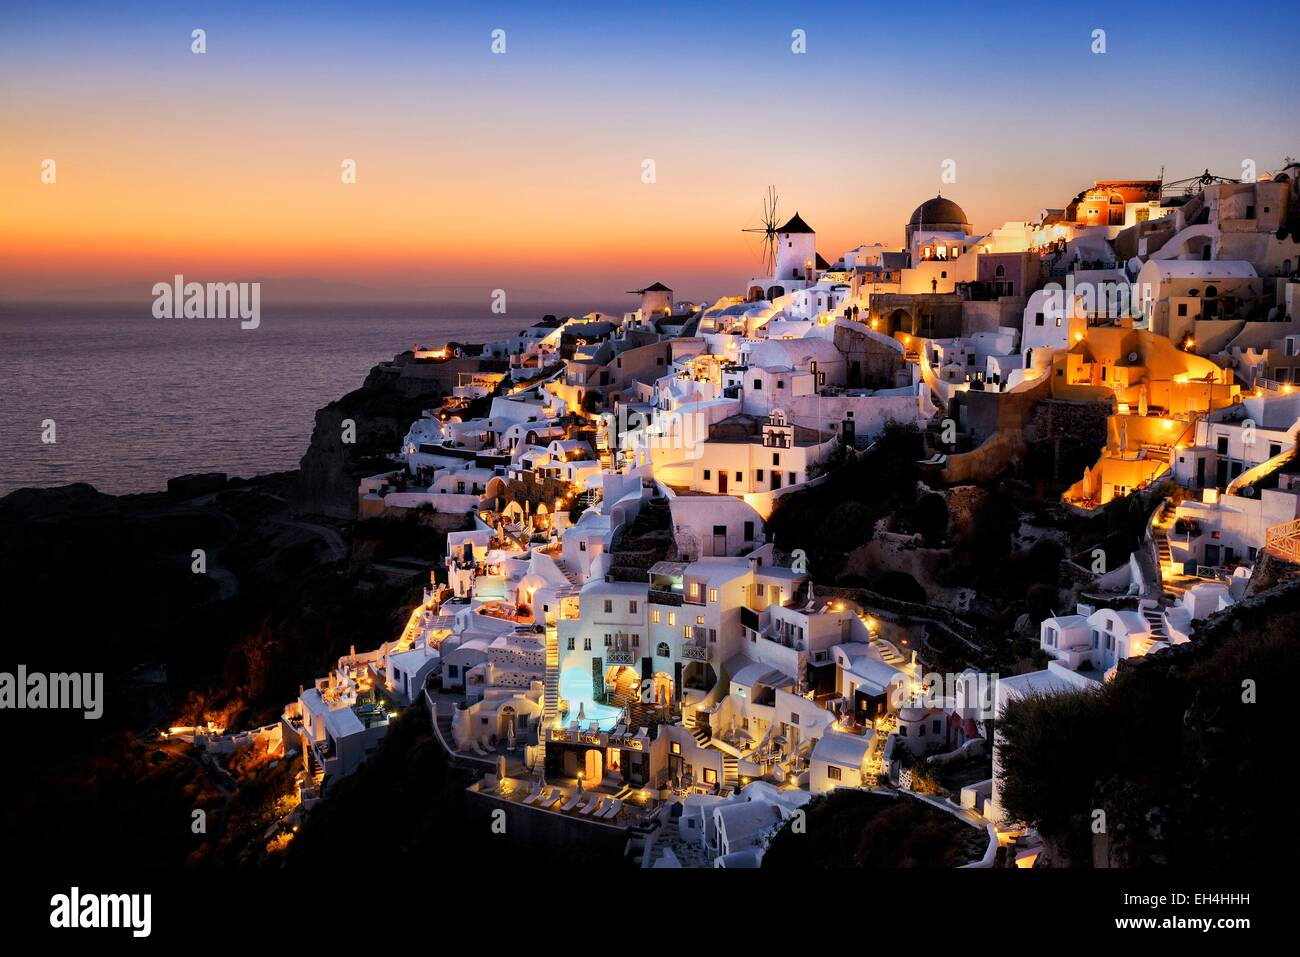 Greece, Cyclades, Santorini island (Thera, Thira), windmills and village of Oia at sunset - Stock Image